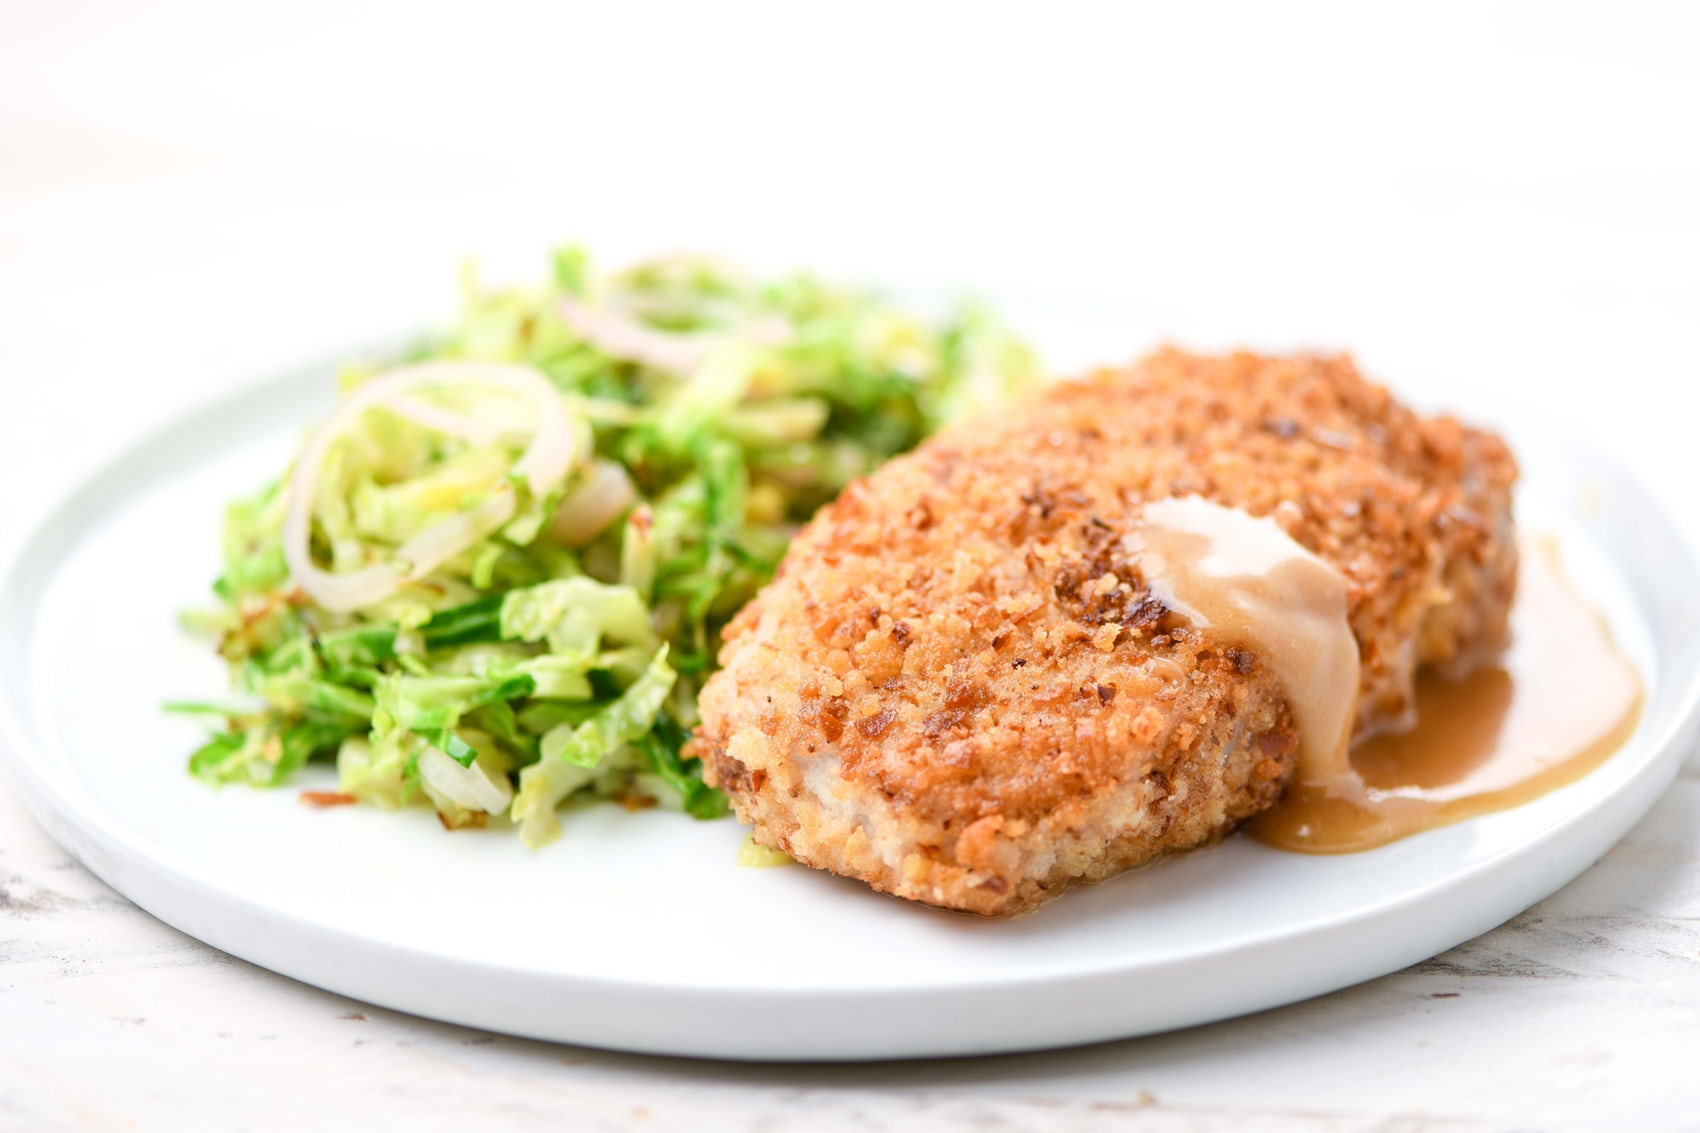 pretzel-crusted pork chop